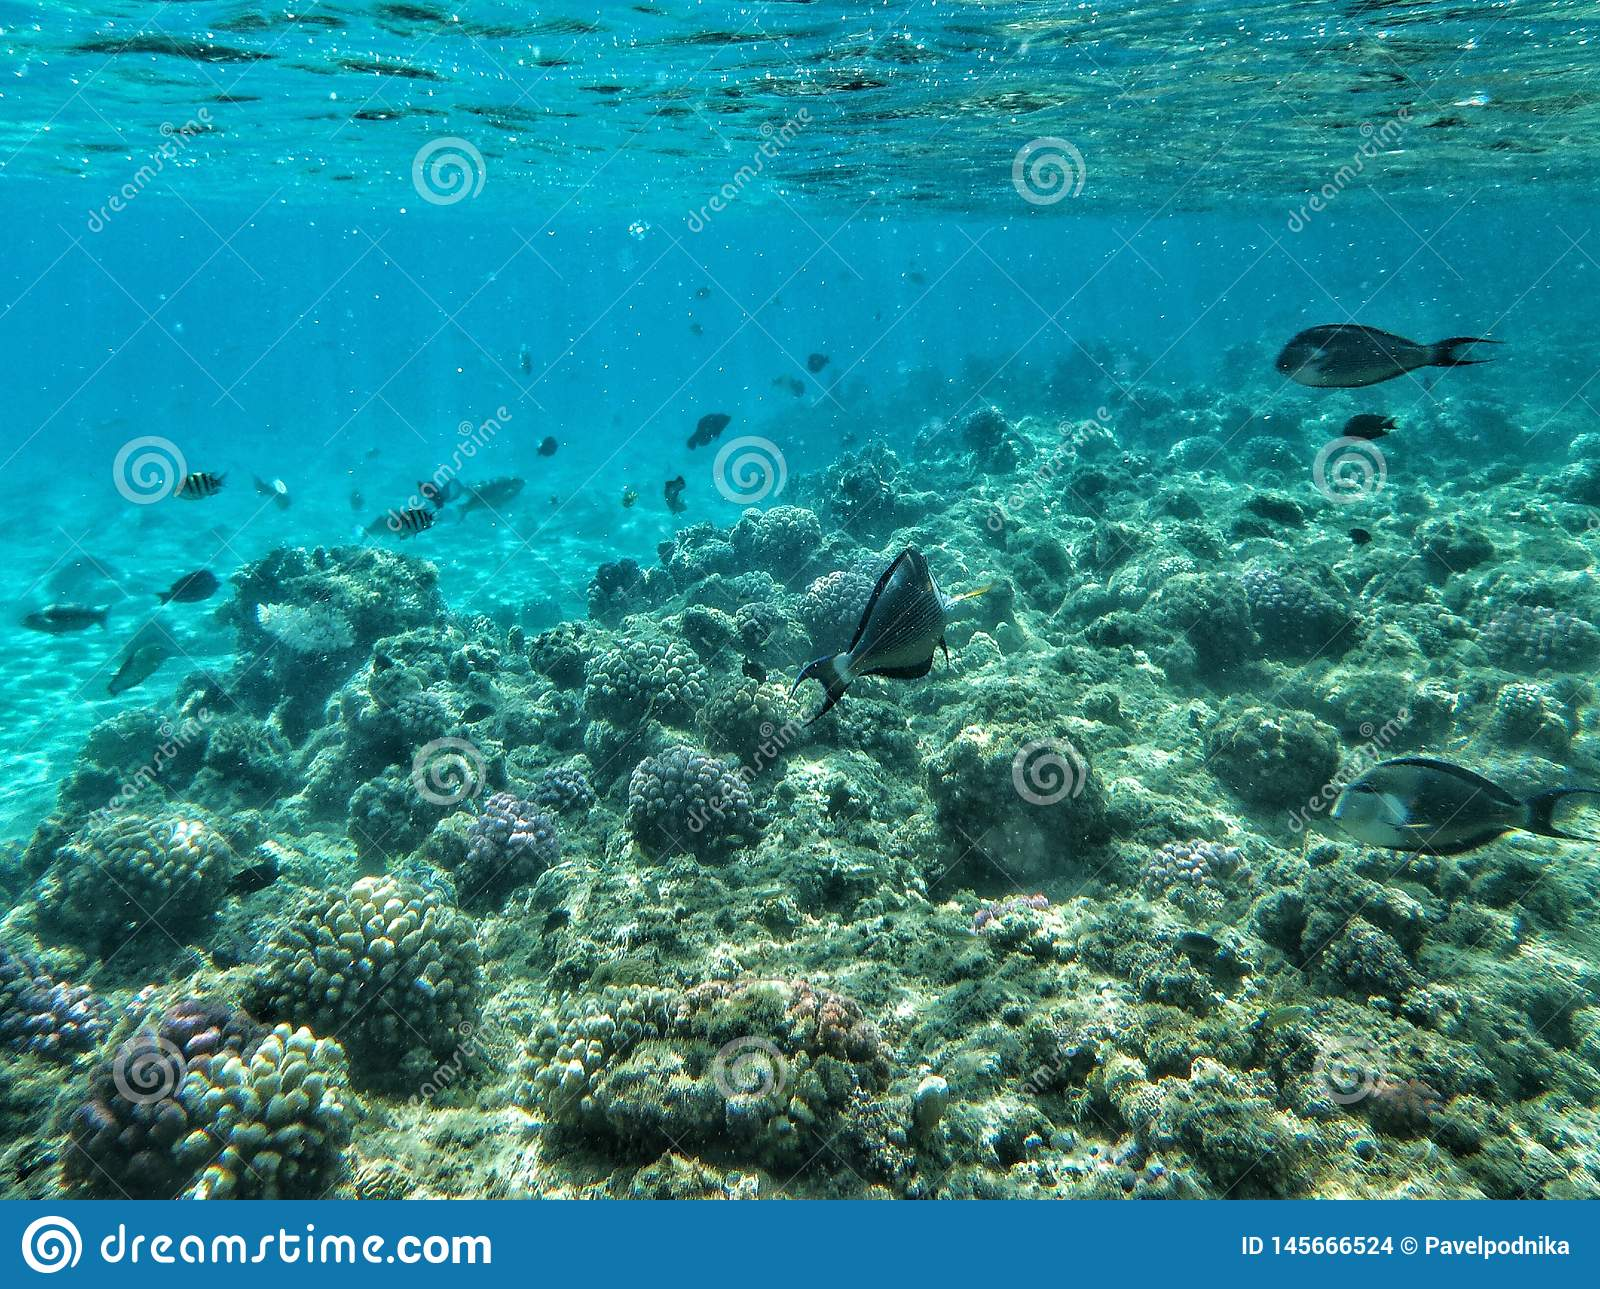 Fish and corals under the sea